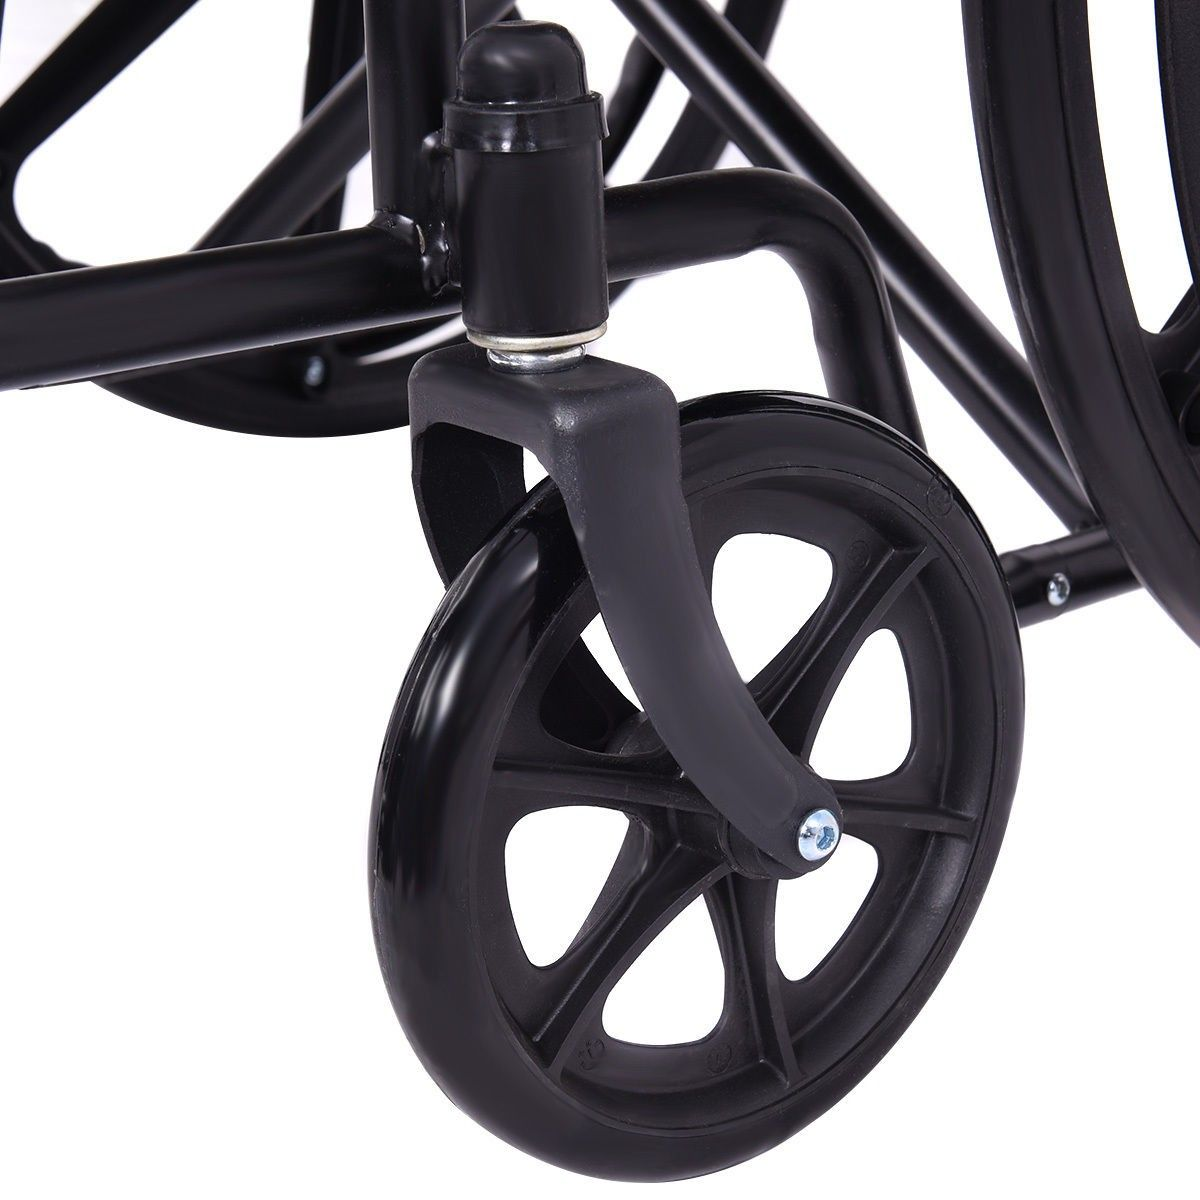 Wheelchair W Full Arms Swing Away Footrest Silversport1 Series Manual Wheelchair Mobility Scooter